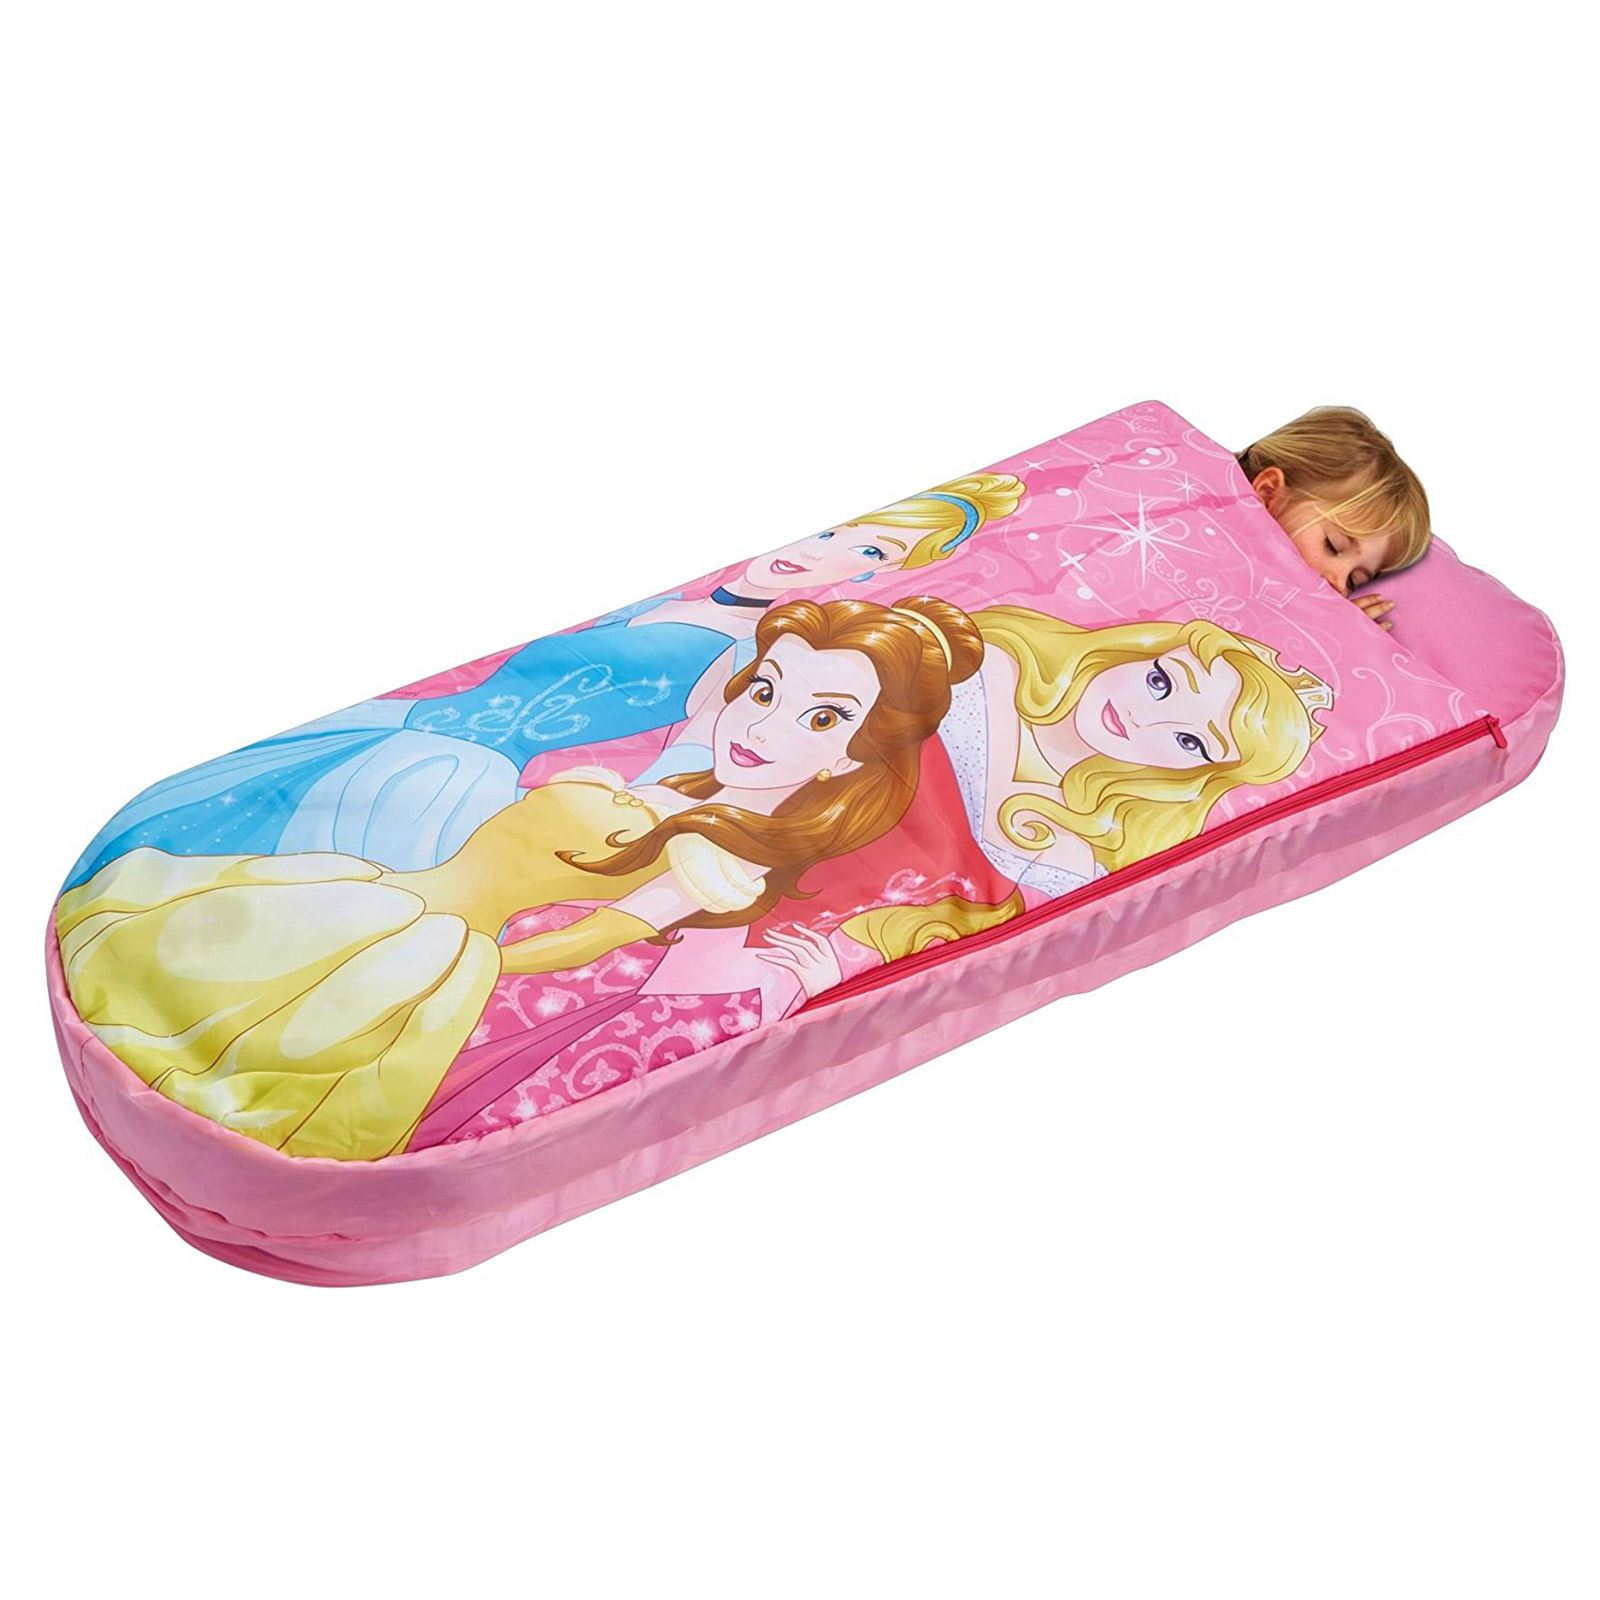 KIDS READYBEDS INFLATABLE BED SLEEPOVER CAMPING - DISNEY ...